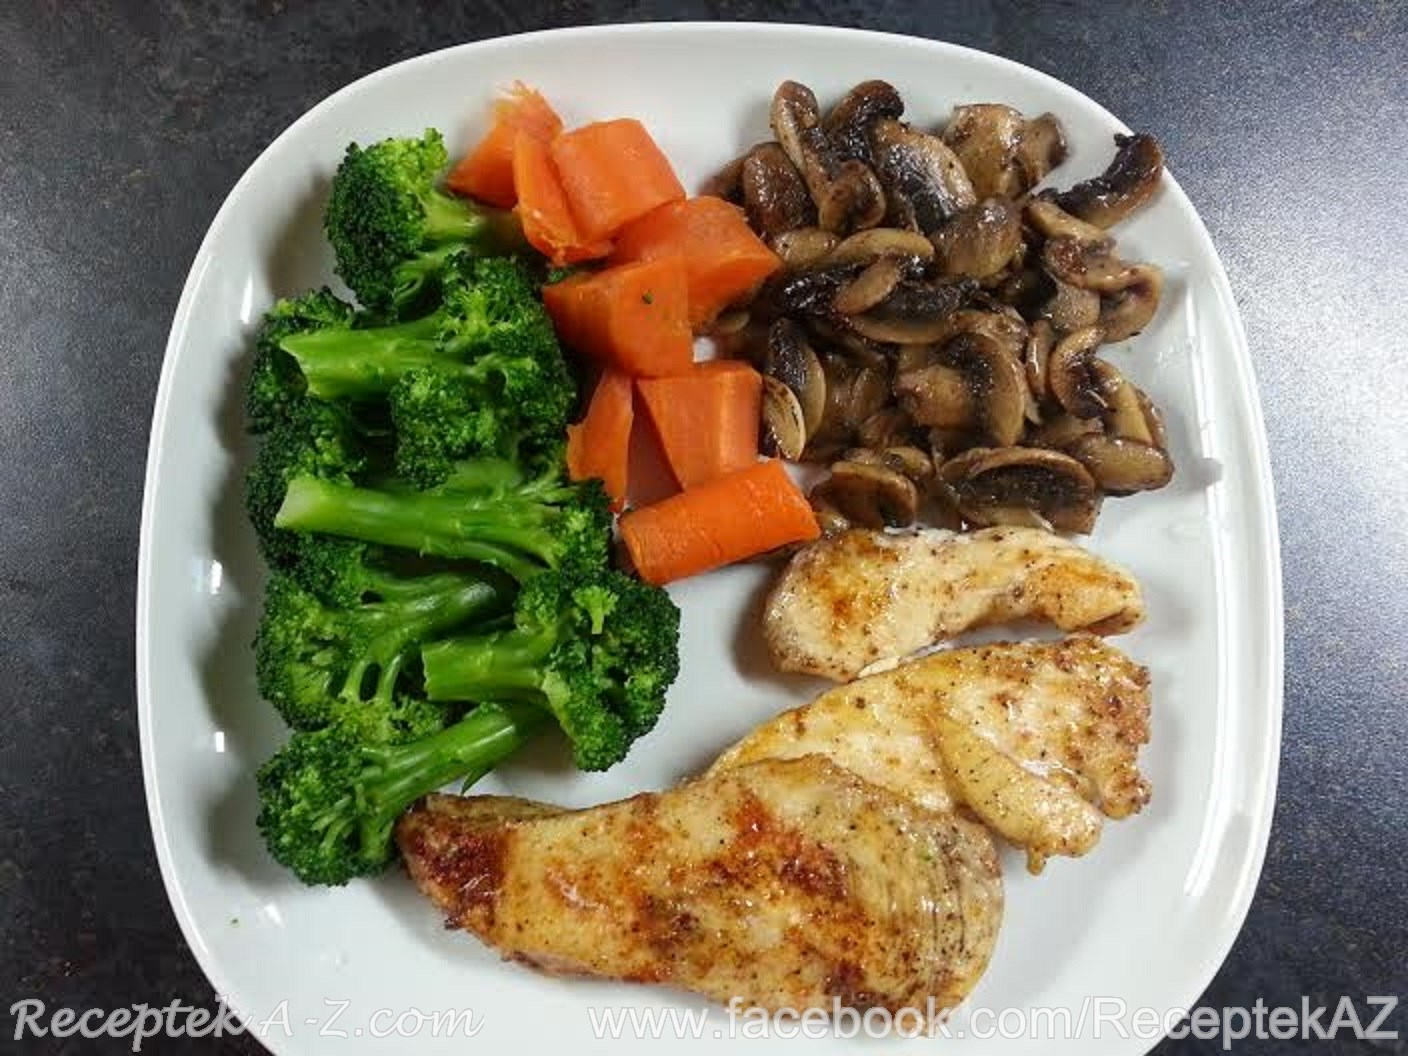 Grilled Chicken Breast With Steamed Vegetables Recipes A Z